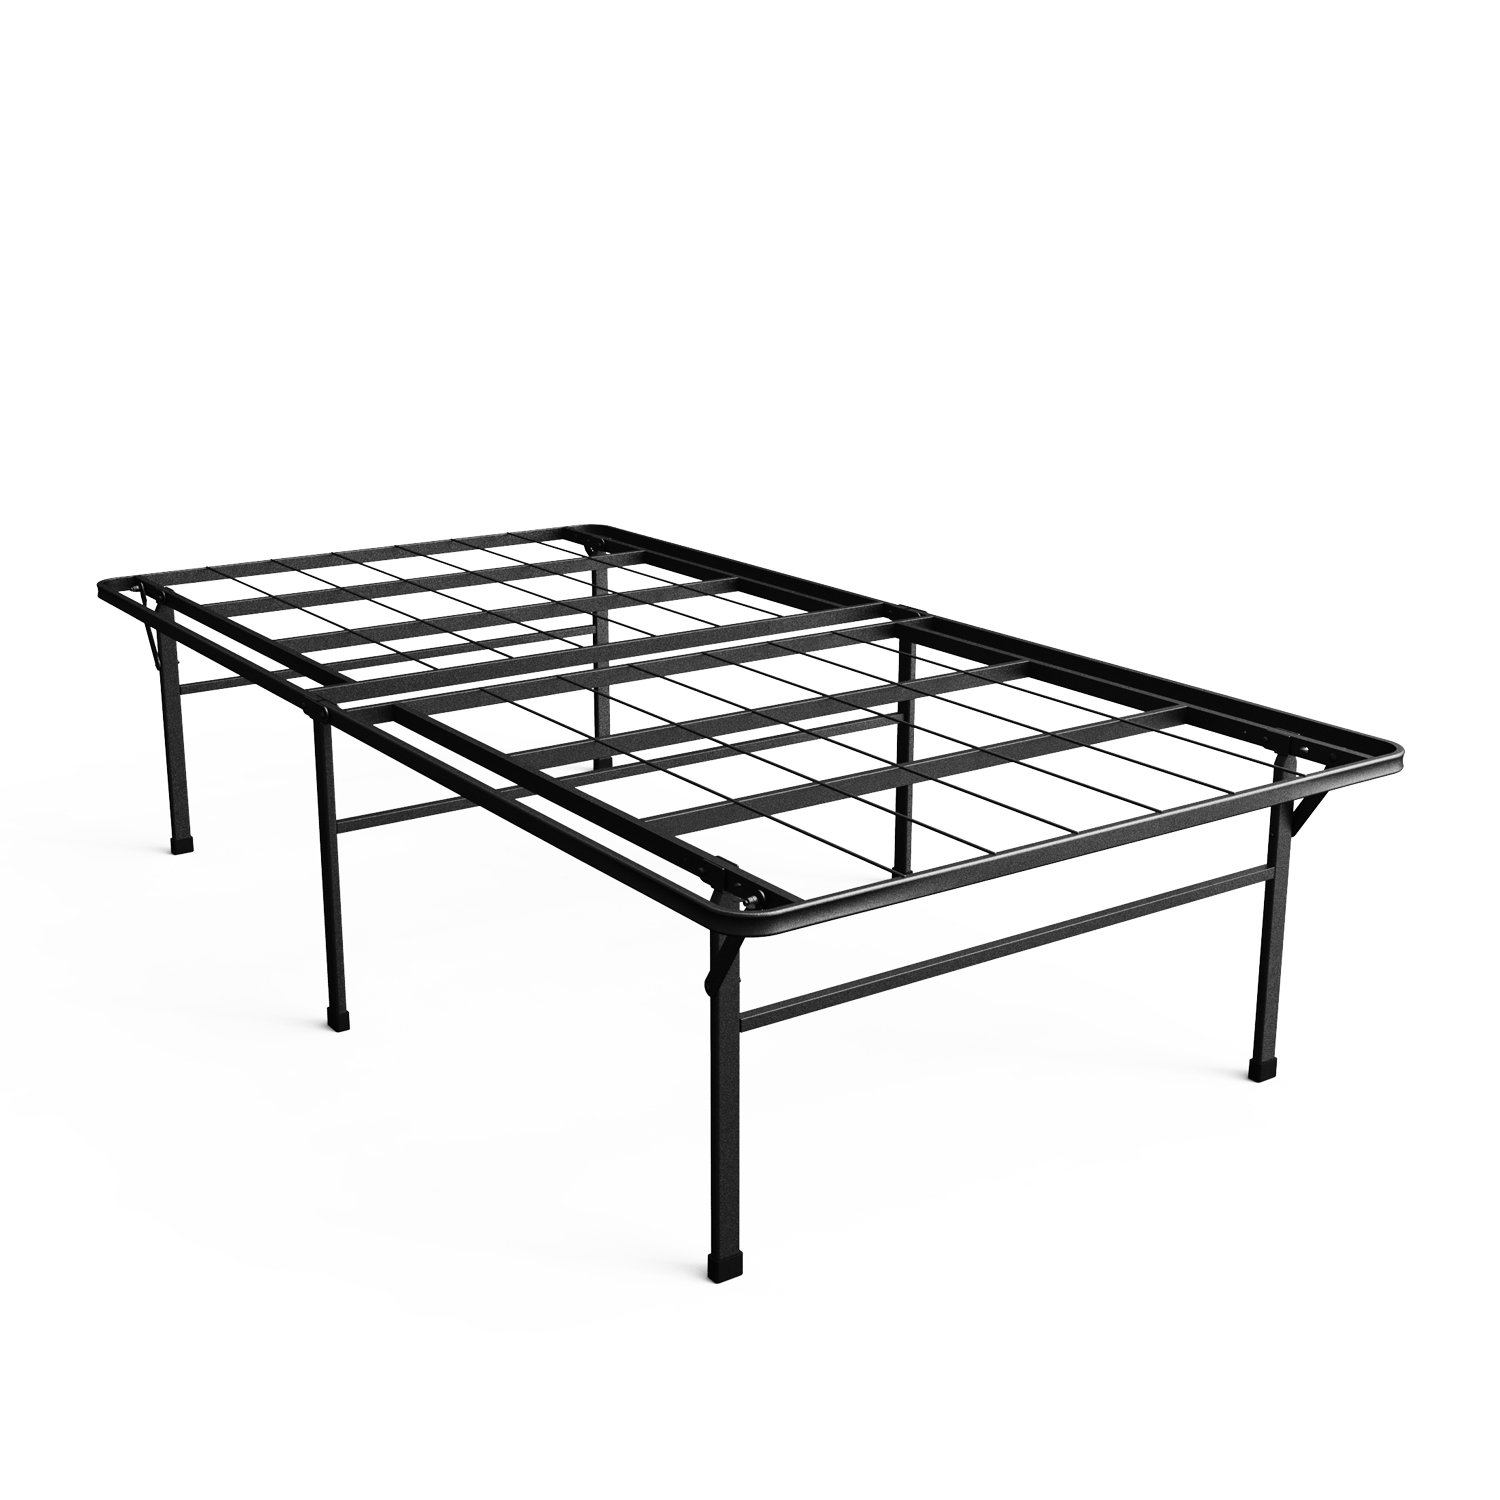 Zinus 18 Inch Premium SmartBase Mattress Foundation, 4 Extra Inches high for Under-bed Storage, Platform Bed Frame, Box Spring Replacement, Strong, Sturdy, Quiet Noise-Free, Twin